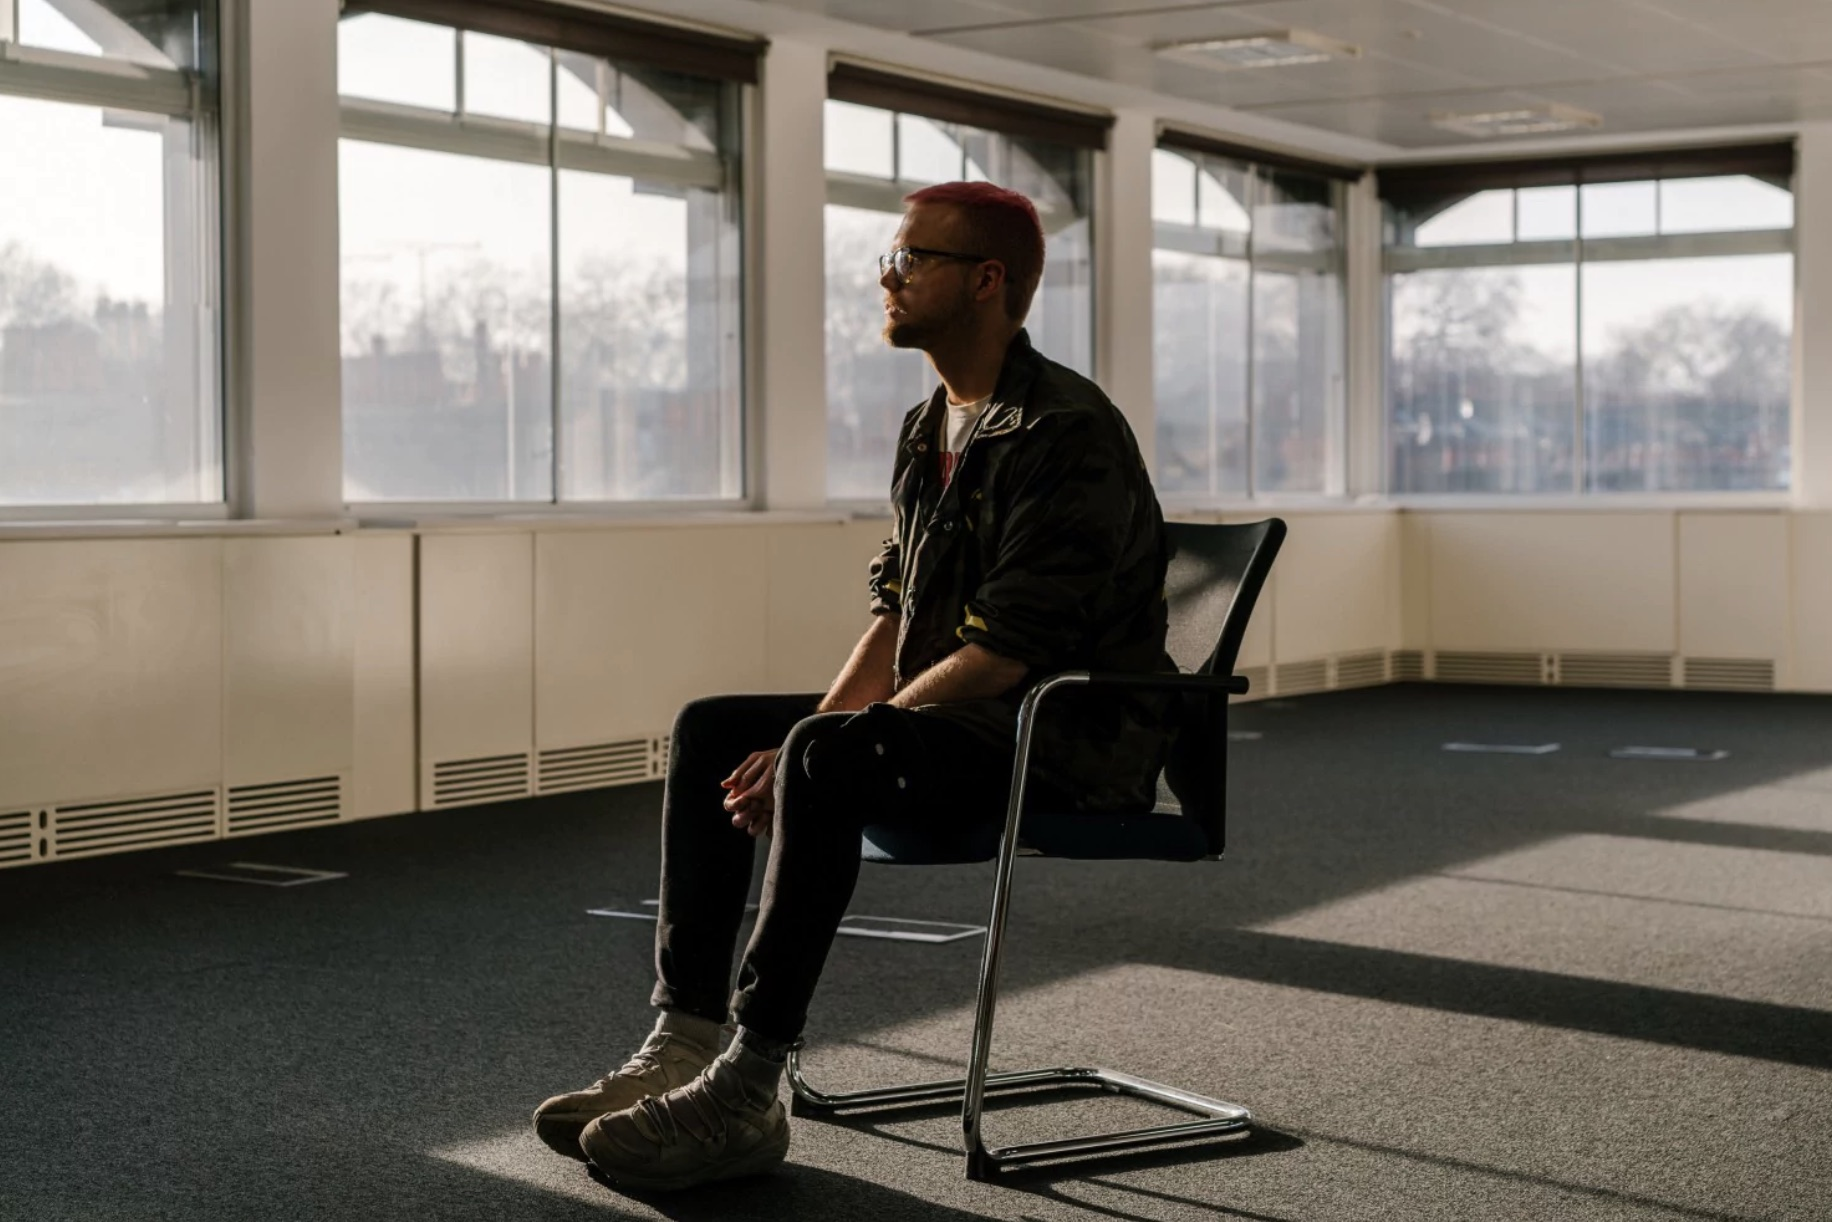 Christopher Wylie explicó cómo Facebook compartía los datos de sus usuarios con las apps, por lo cual se produjo el abuso de Cambridge Analytica (Jake Naughton/The Washington Post)